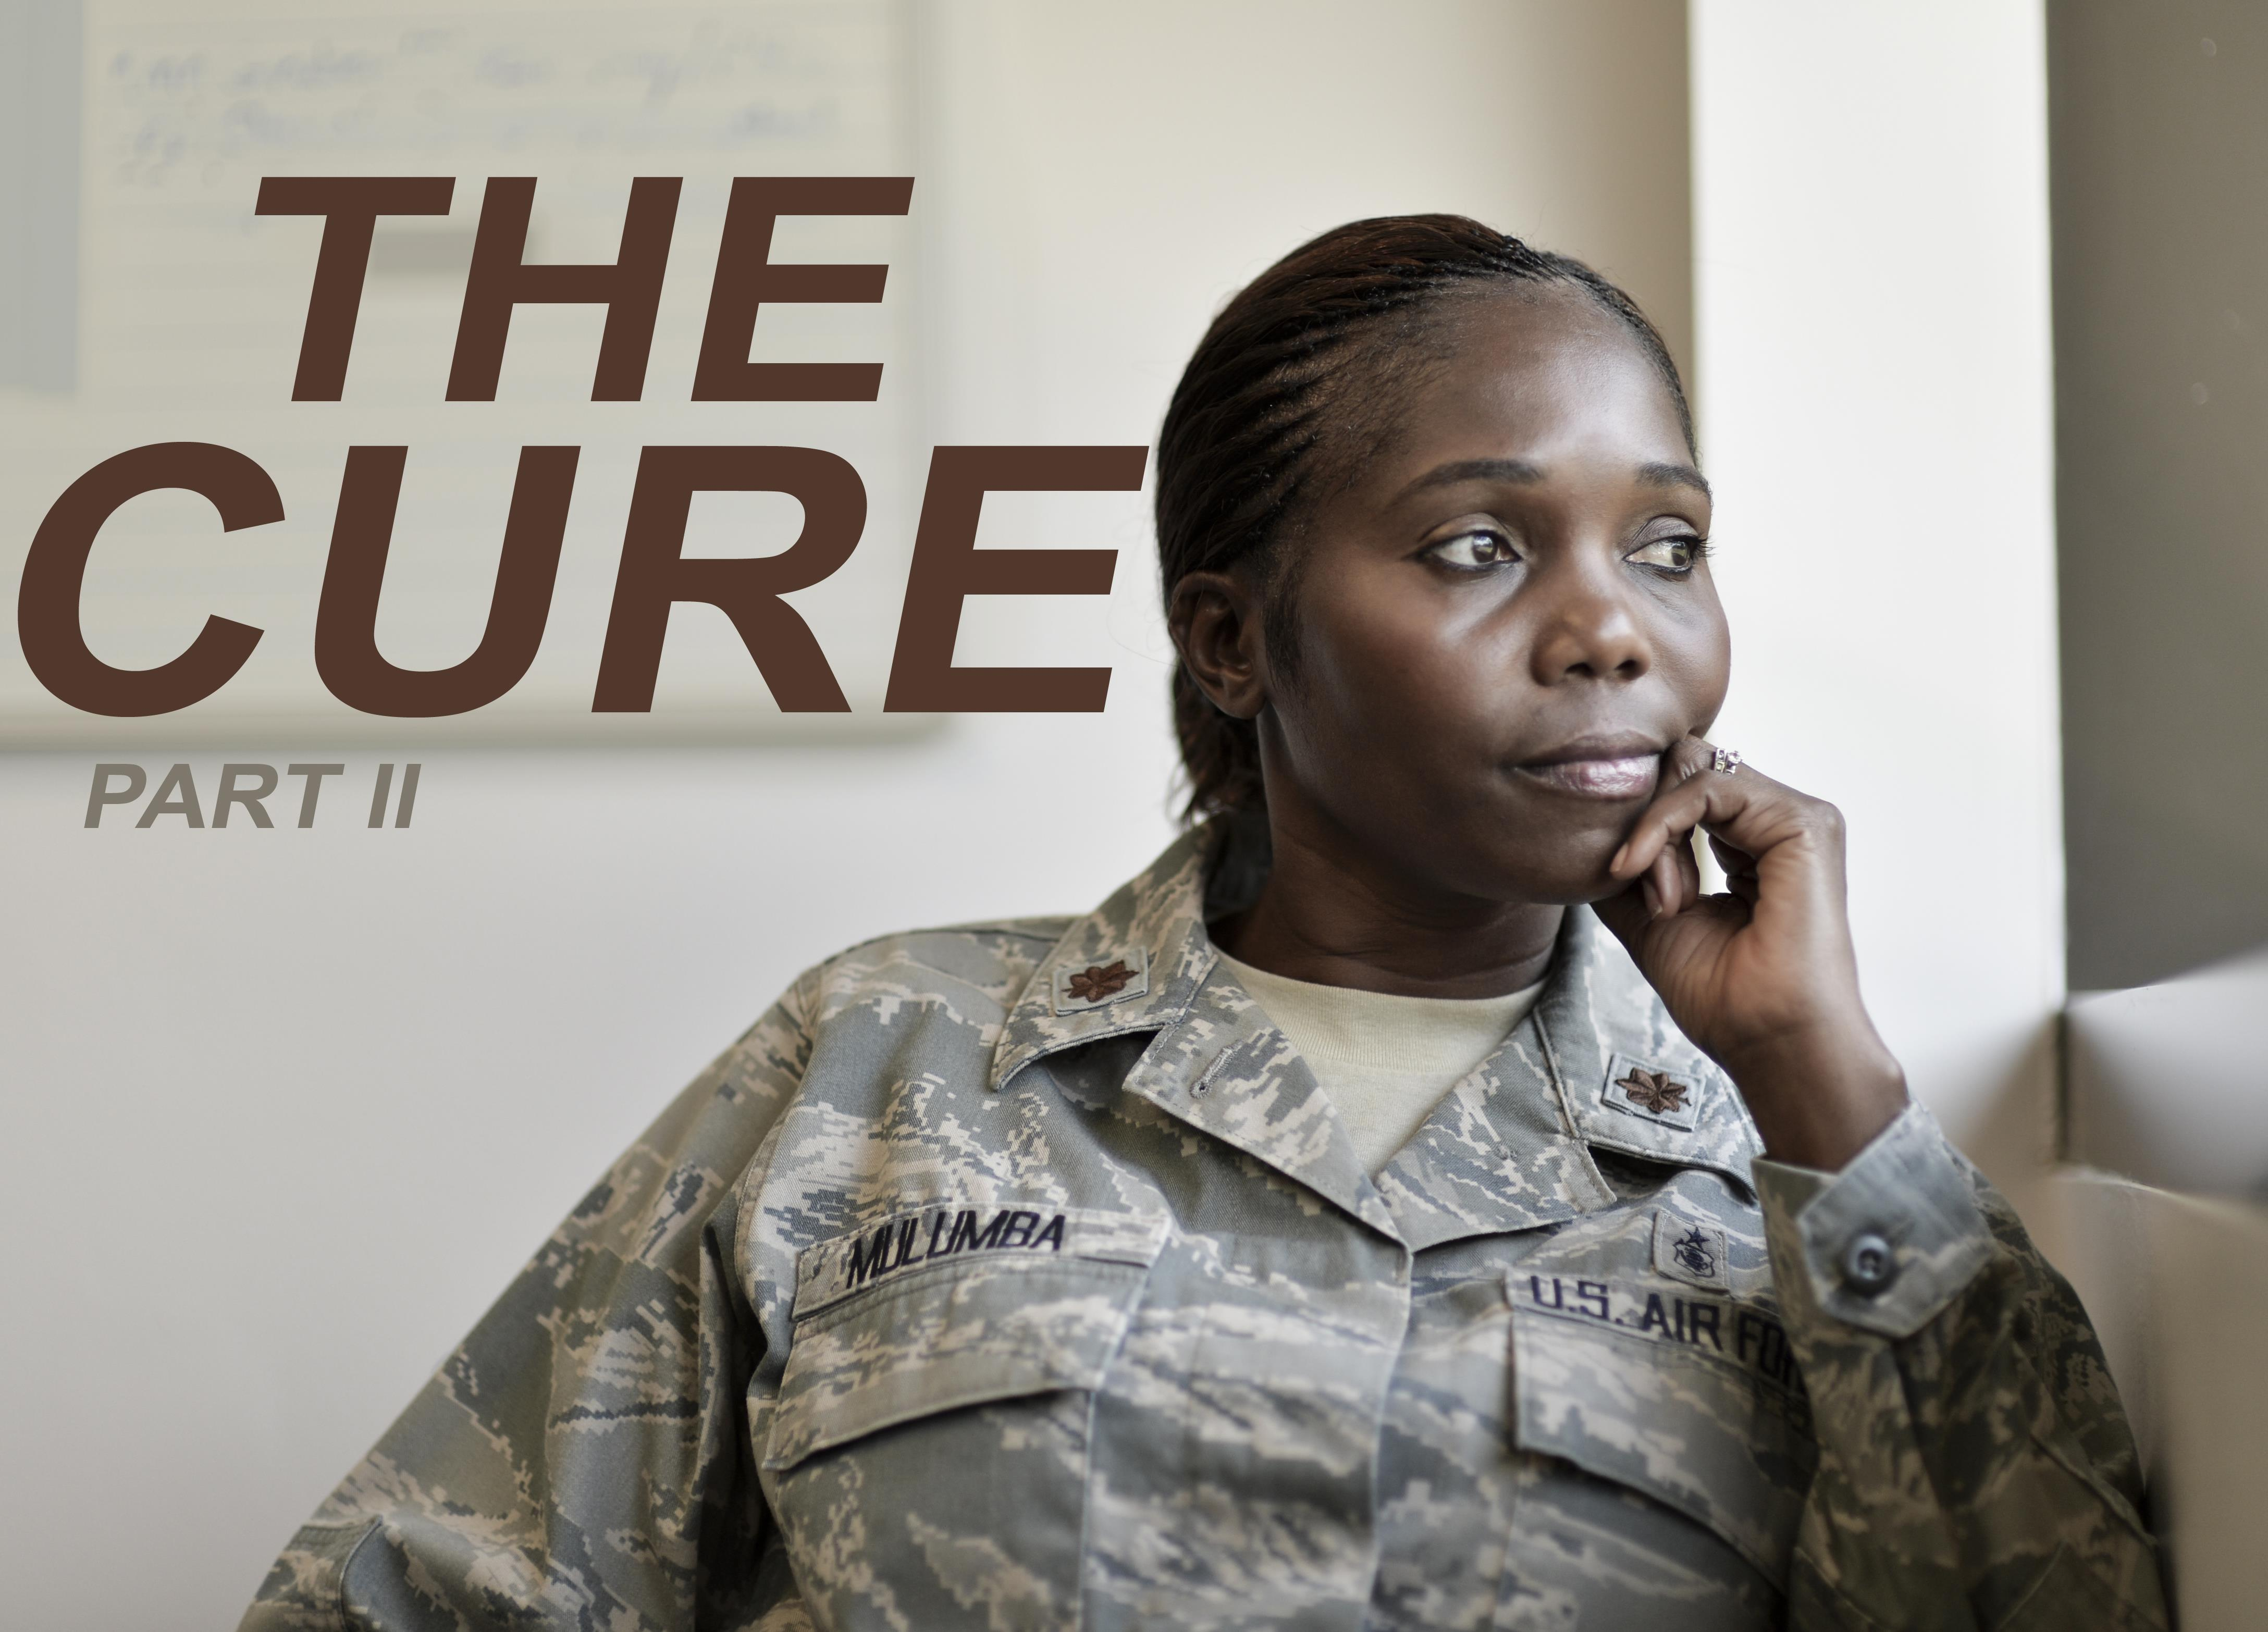 Part II: The Cure > Air Force Medical Service > Display